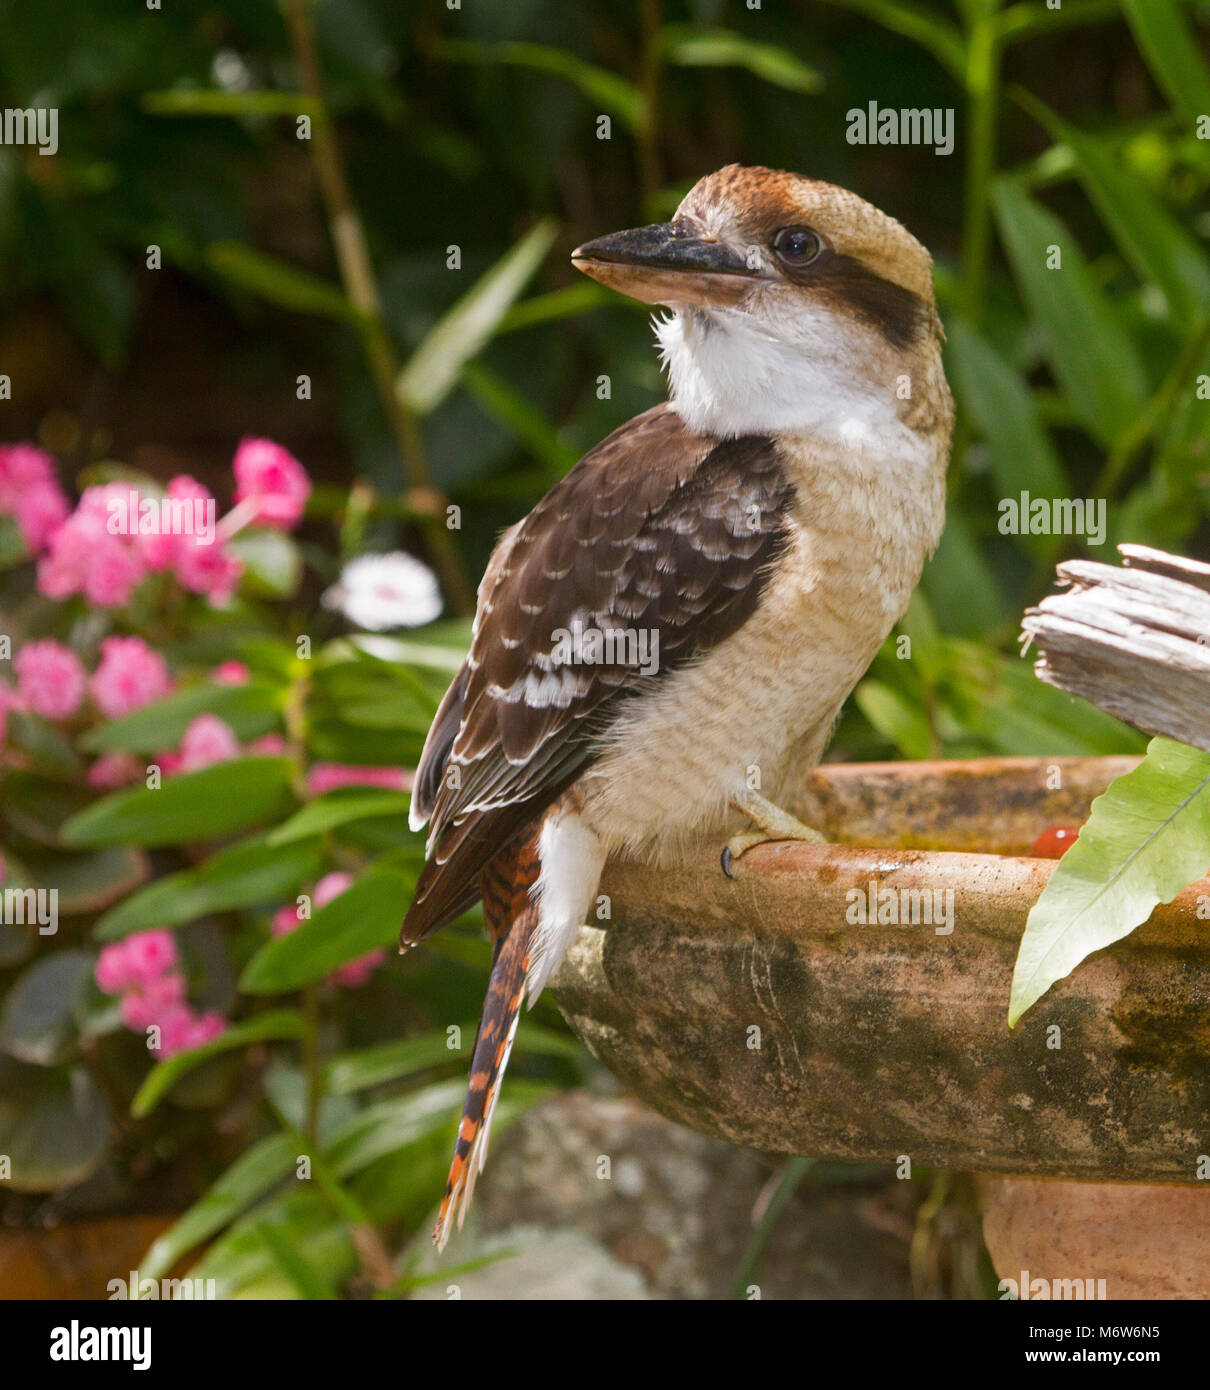 Kookaburra, Australian Laughing jackass, Dacelo novaeguineae at a garden bird bath with background of green foliage - Stock Image